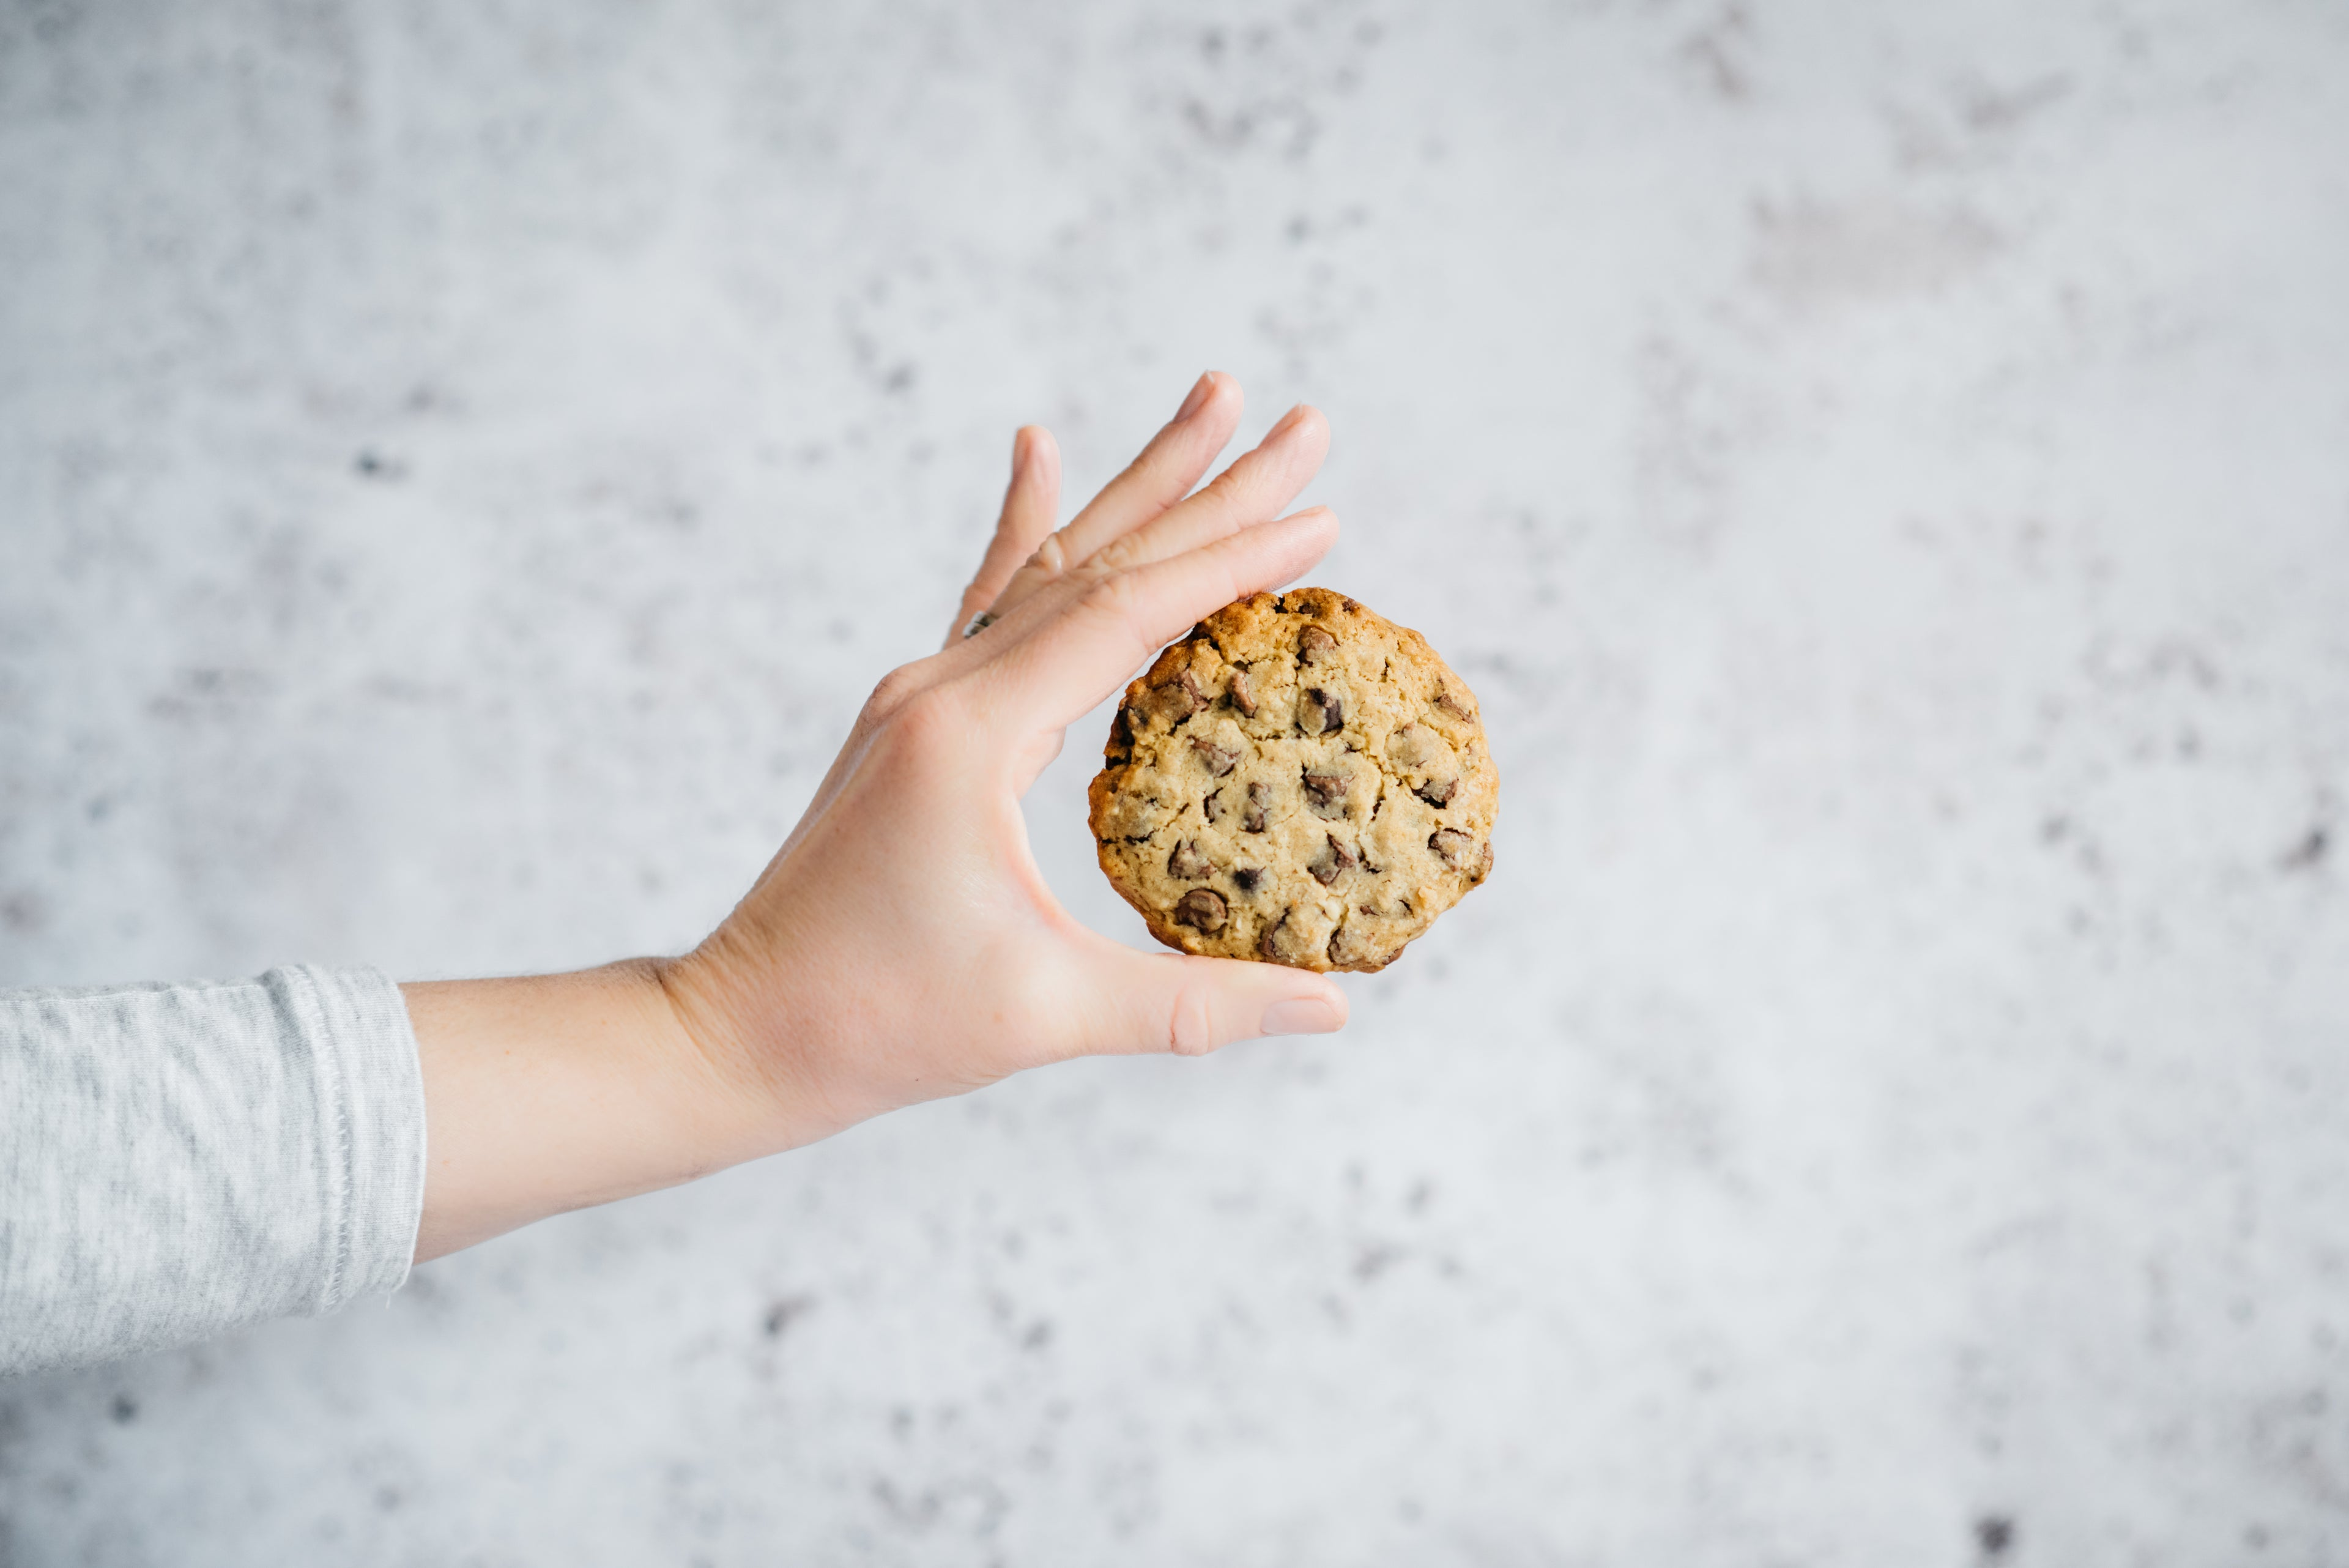 Hand holding a single chocolate chip cookie